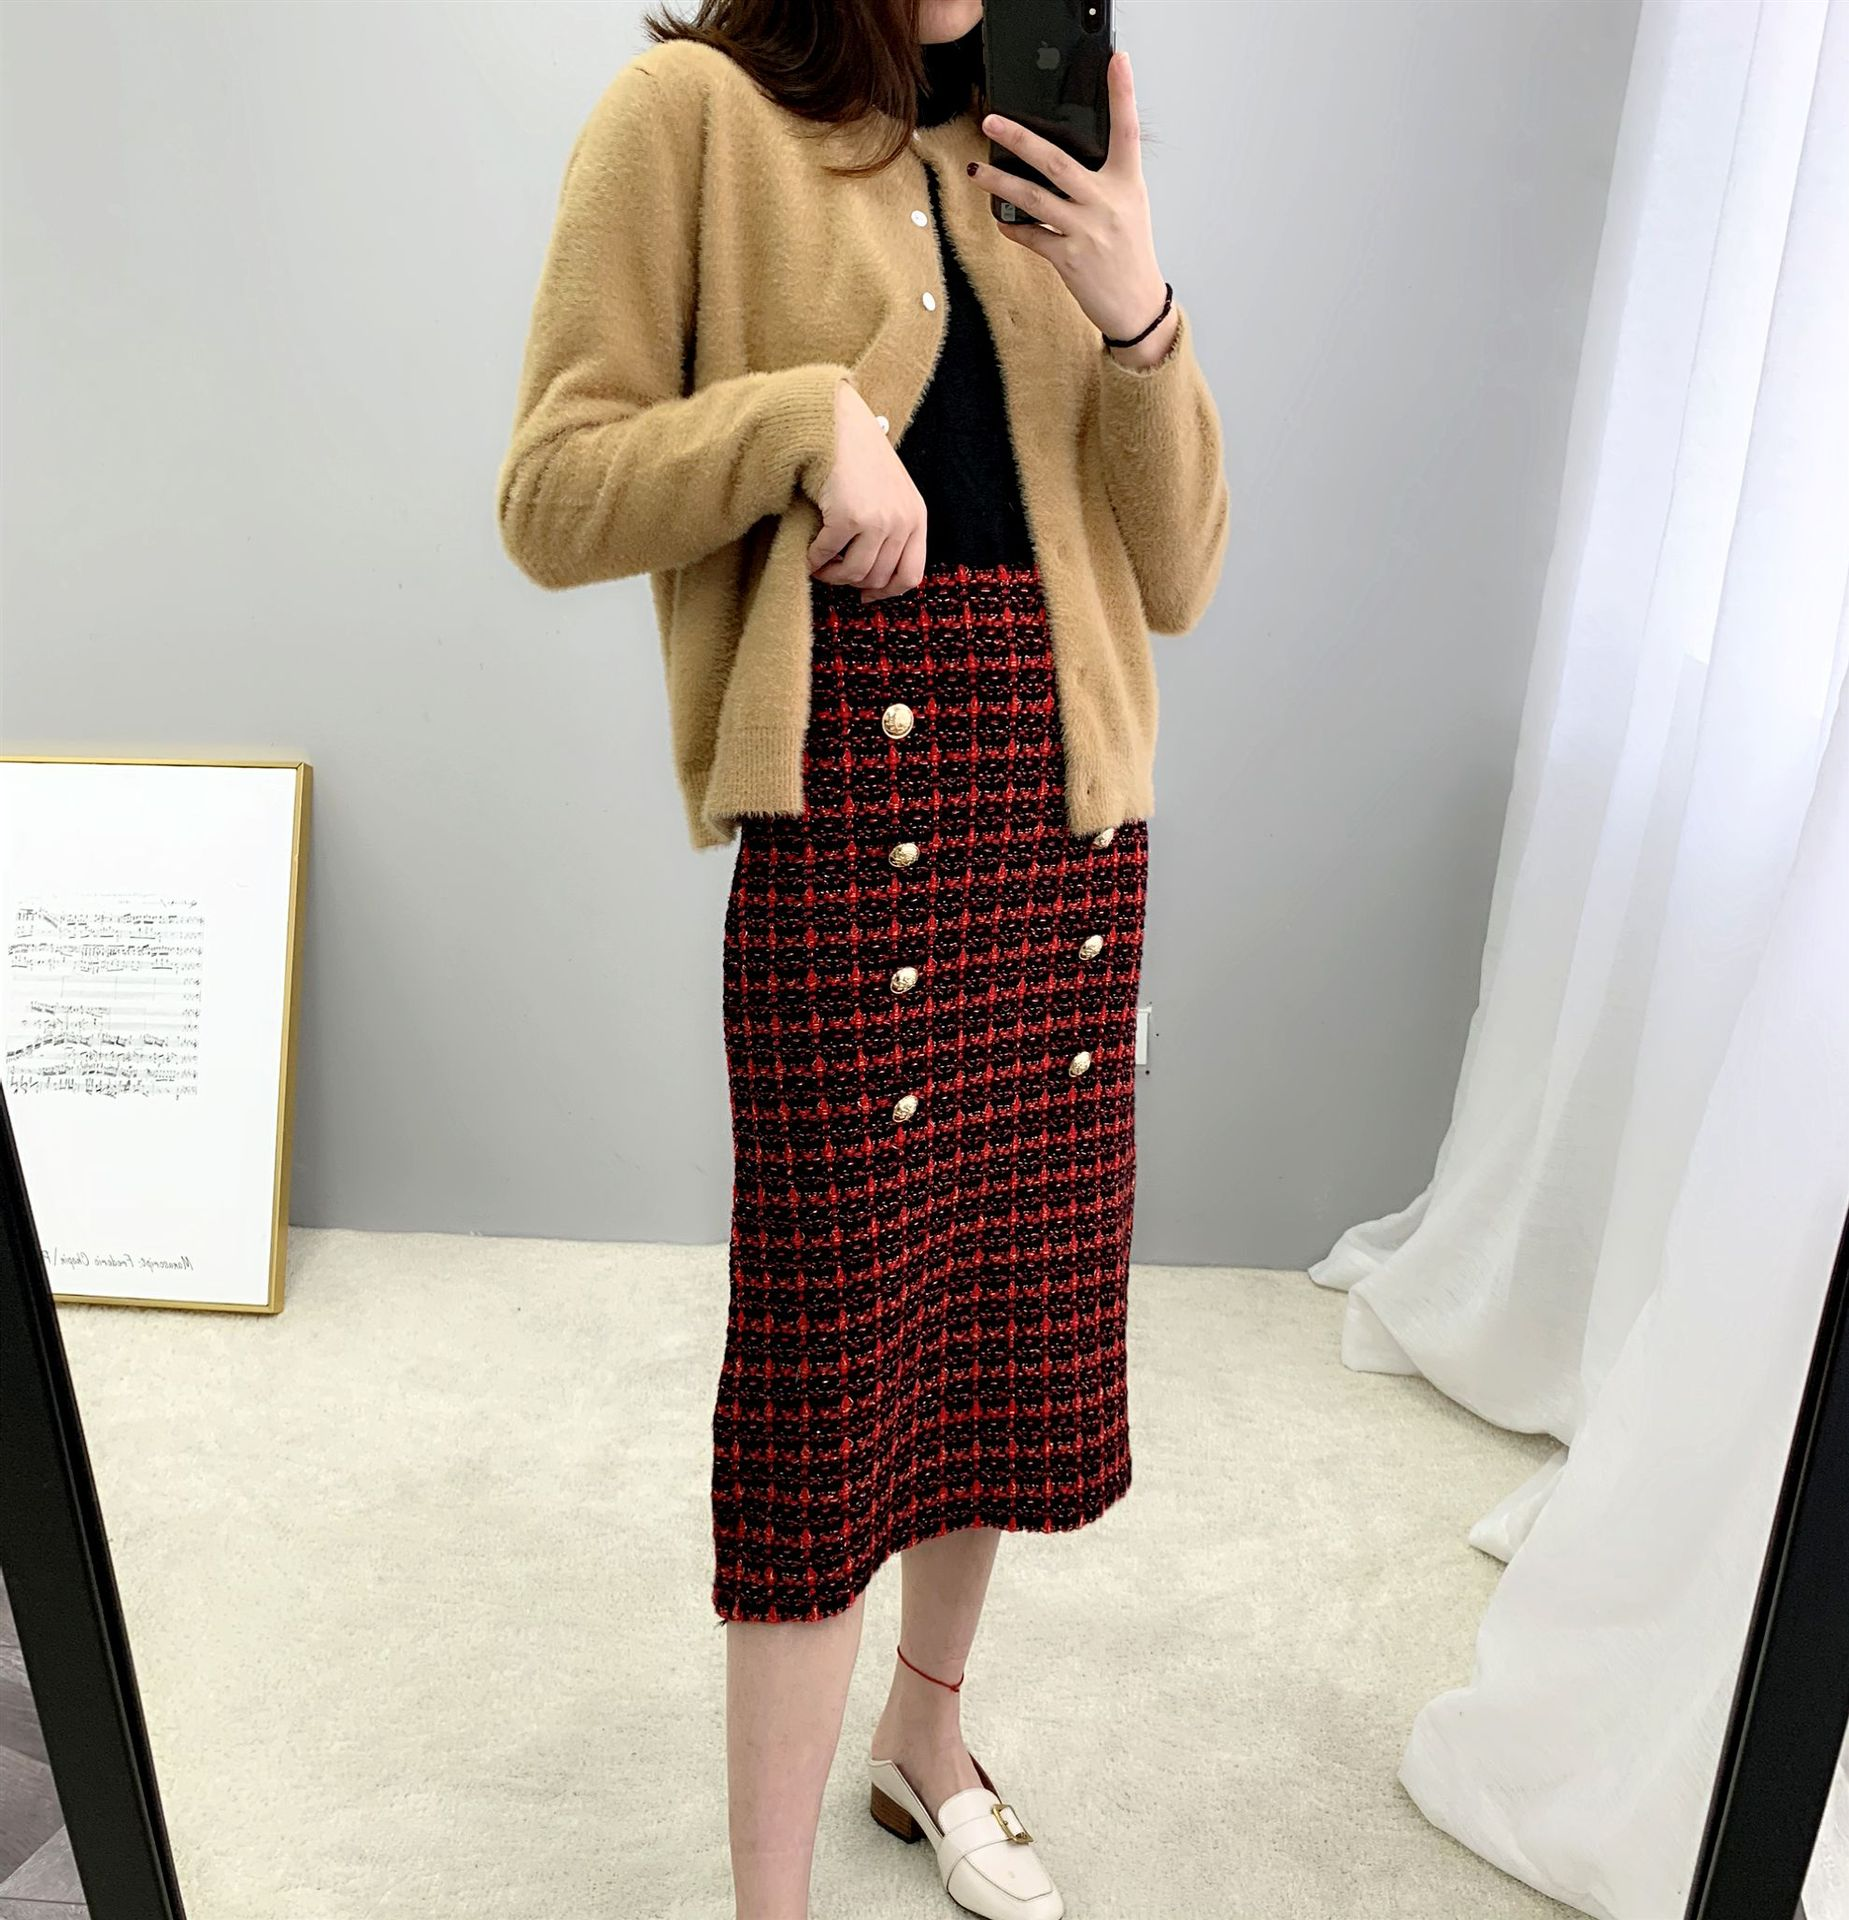 19 Spring autumn New tweed Women's skirt elegant Office Double Breasted plaid knitted Vintage Package Hip midi skirt Female 2